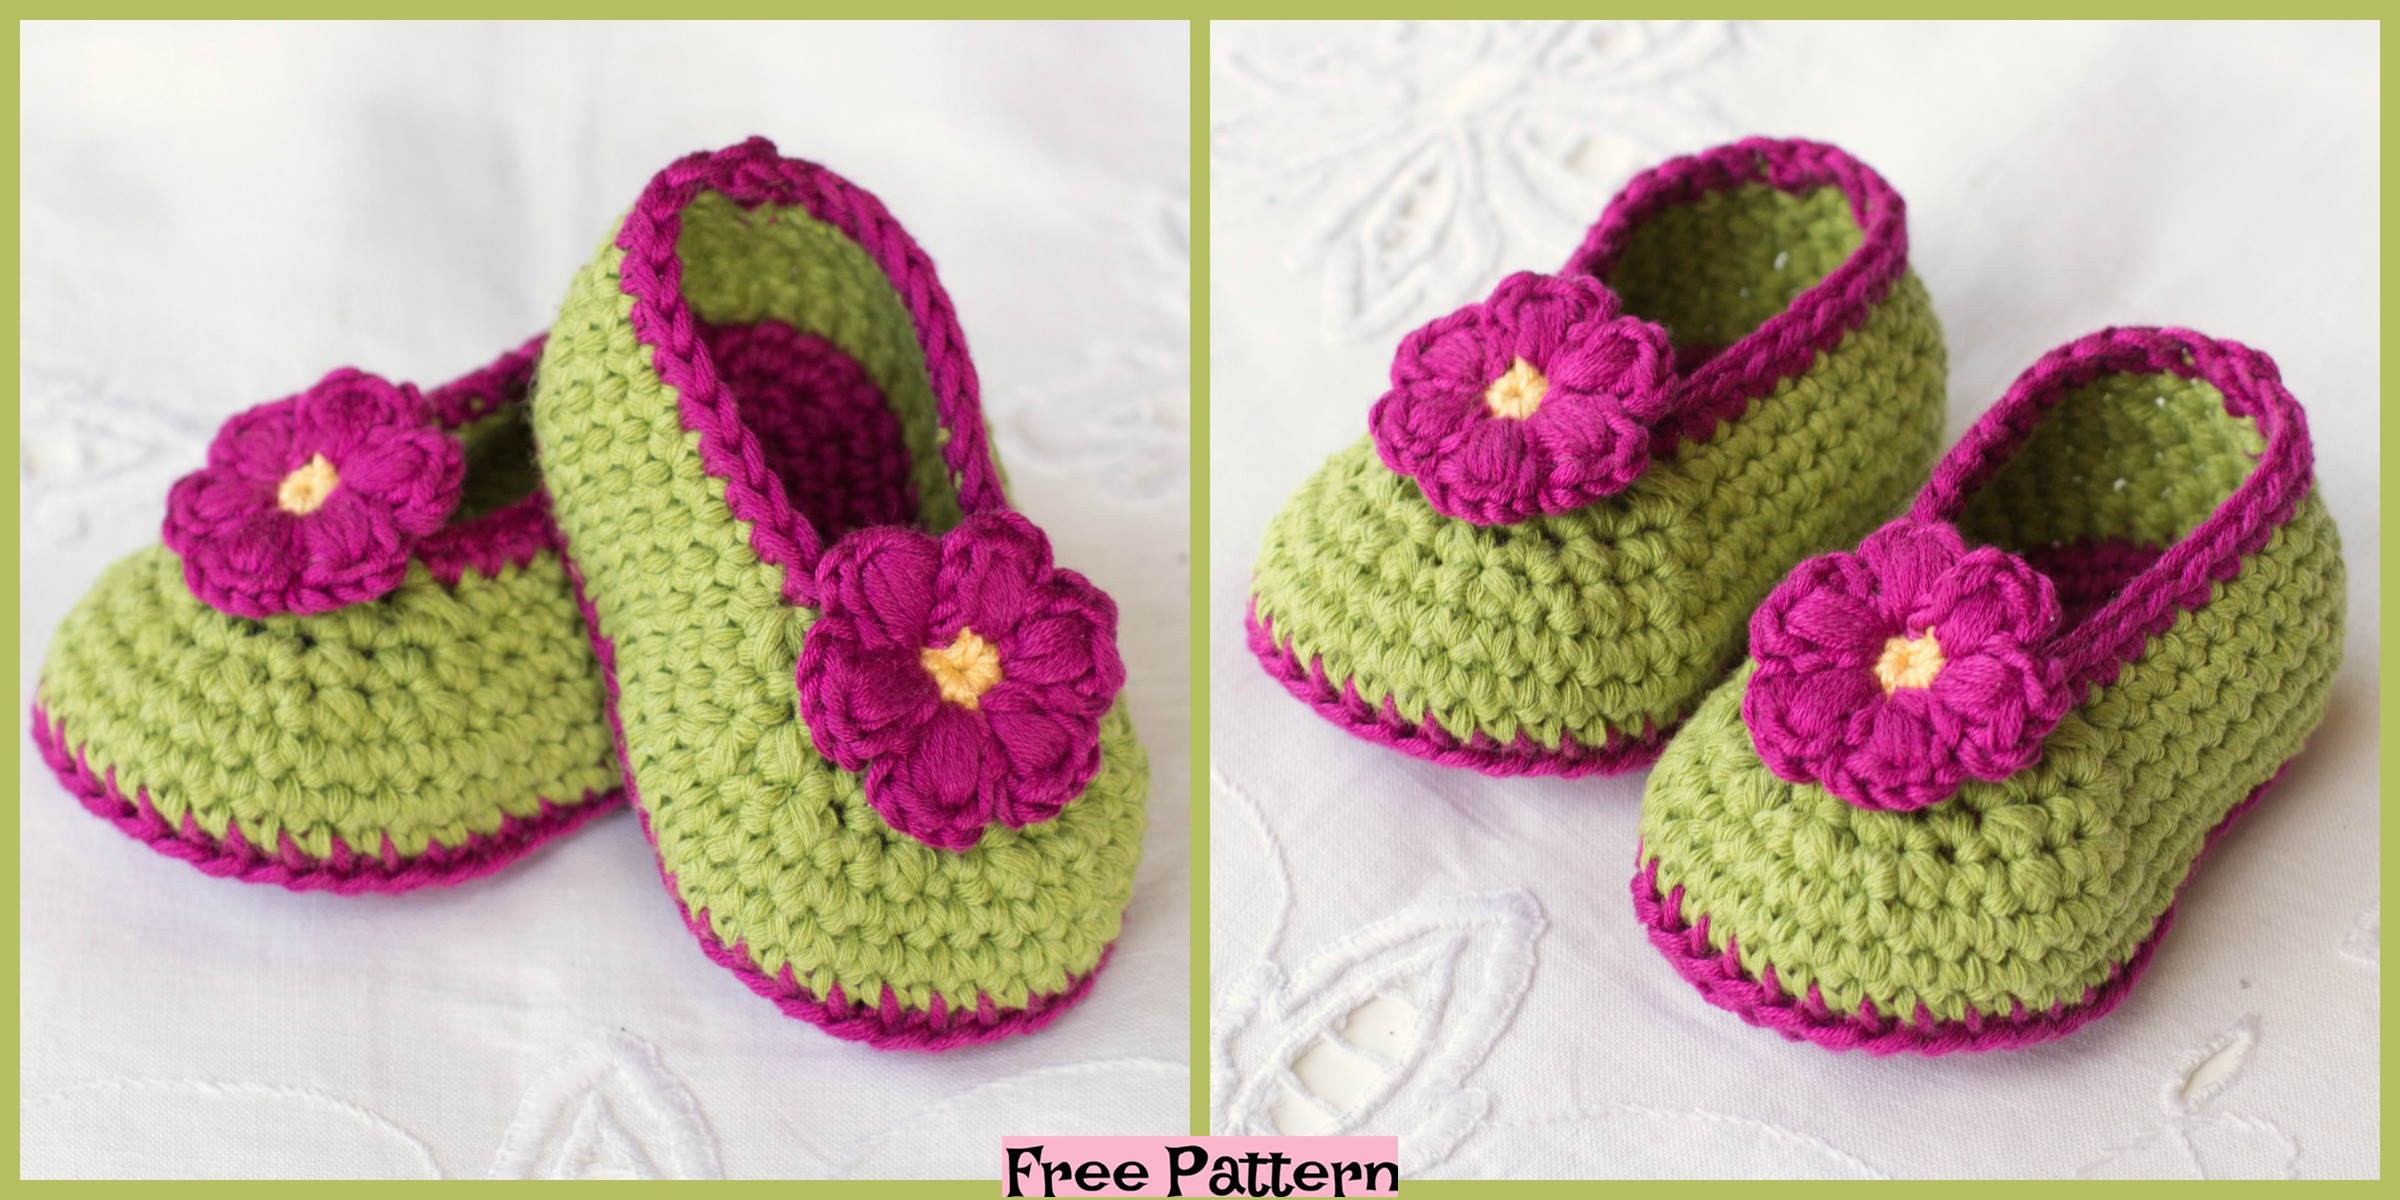 Crochet Fairy Blossom Baby Booties – Free Pattern